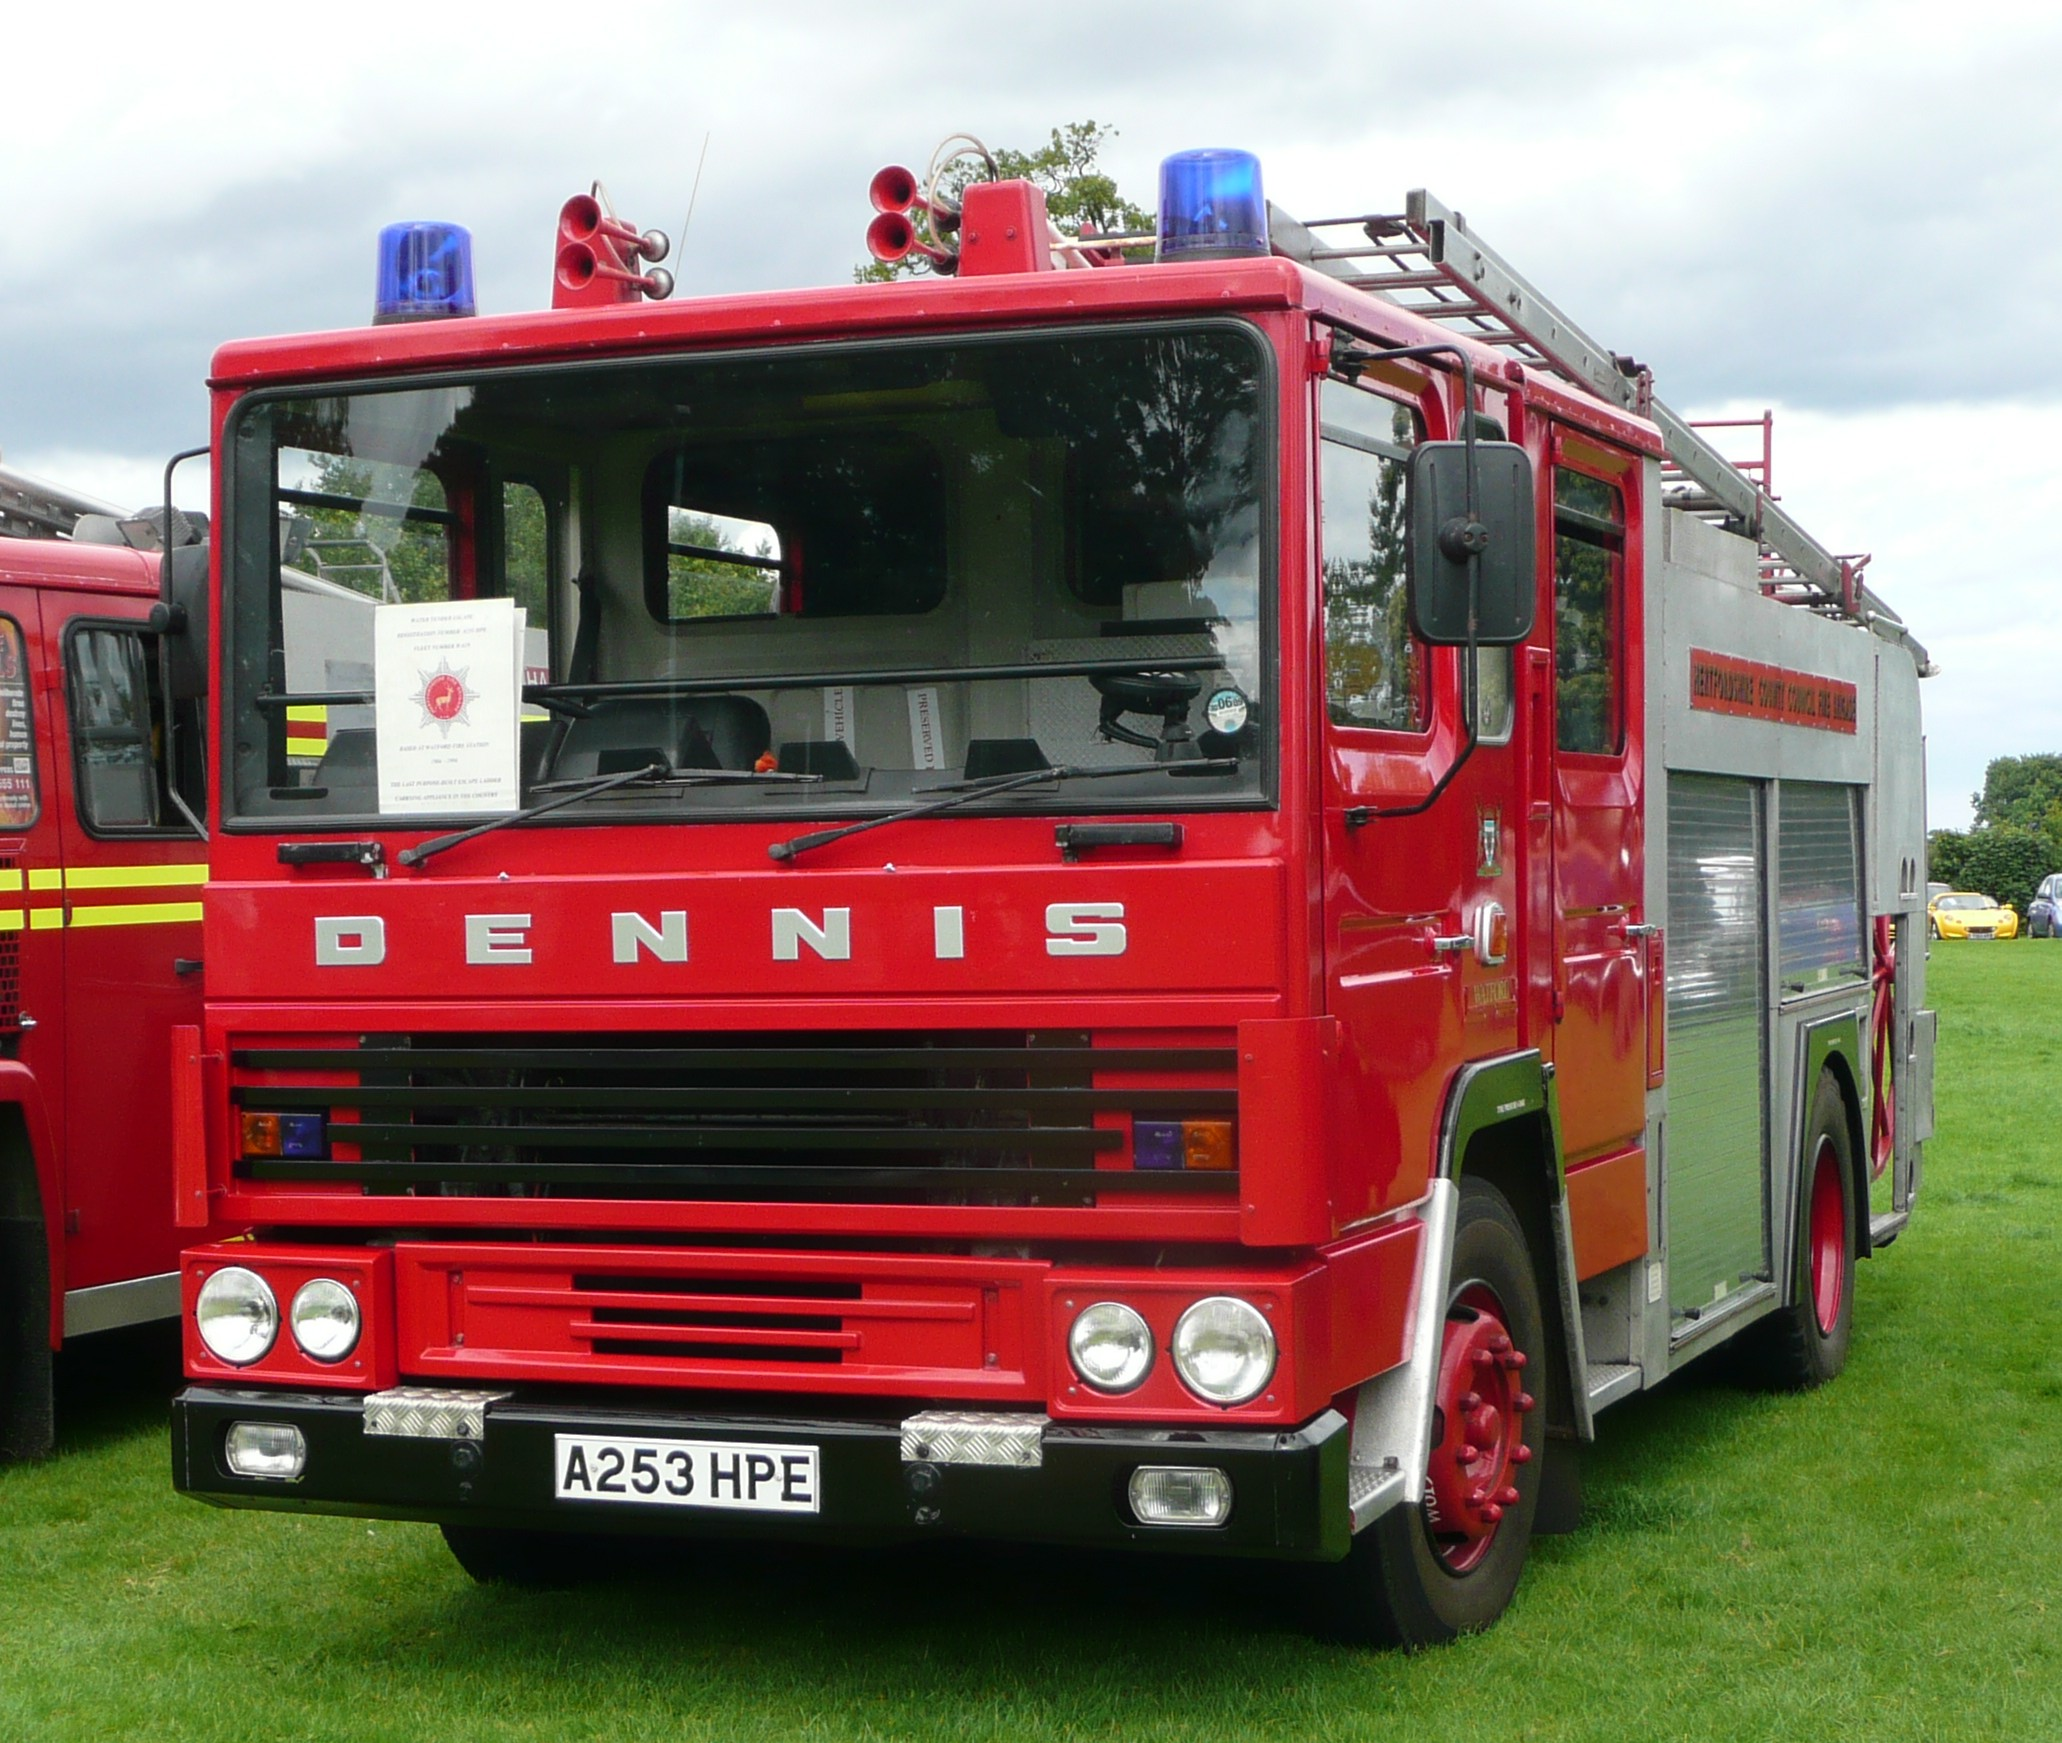 Hertfordshire_Fire_and_Rescue_Service_A253_HPE.JPG